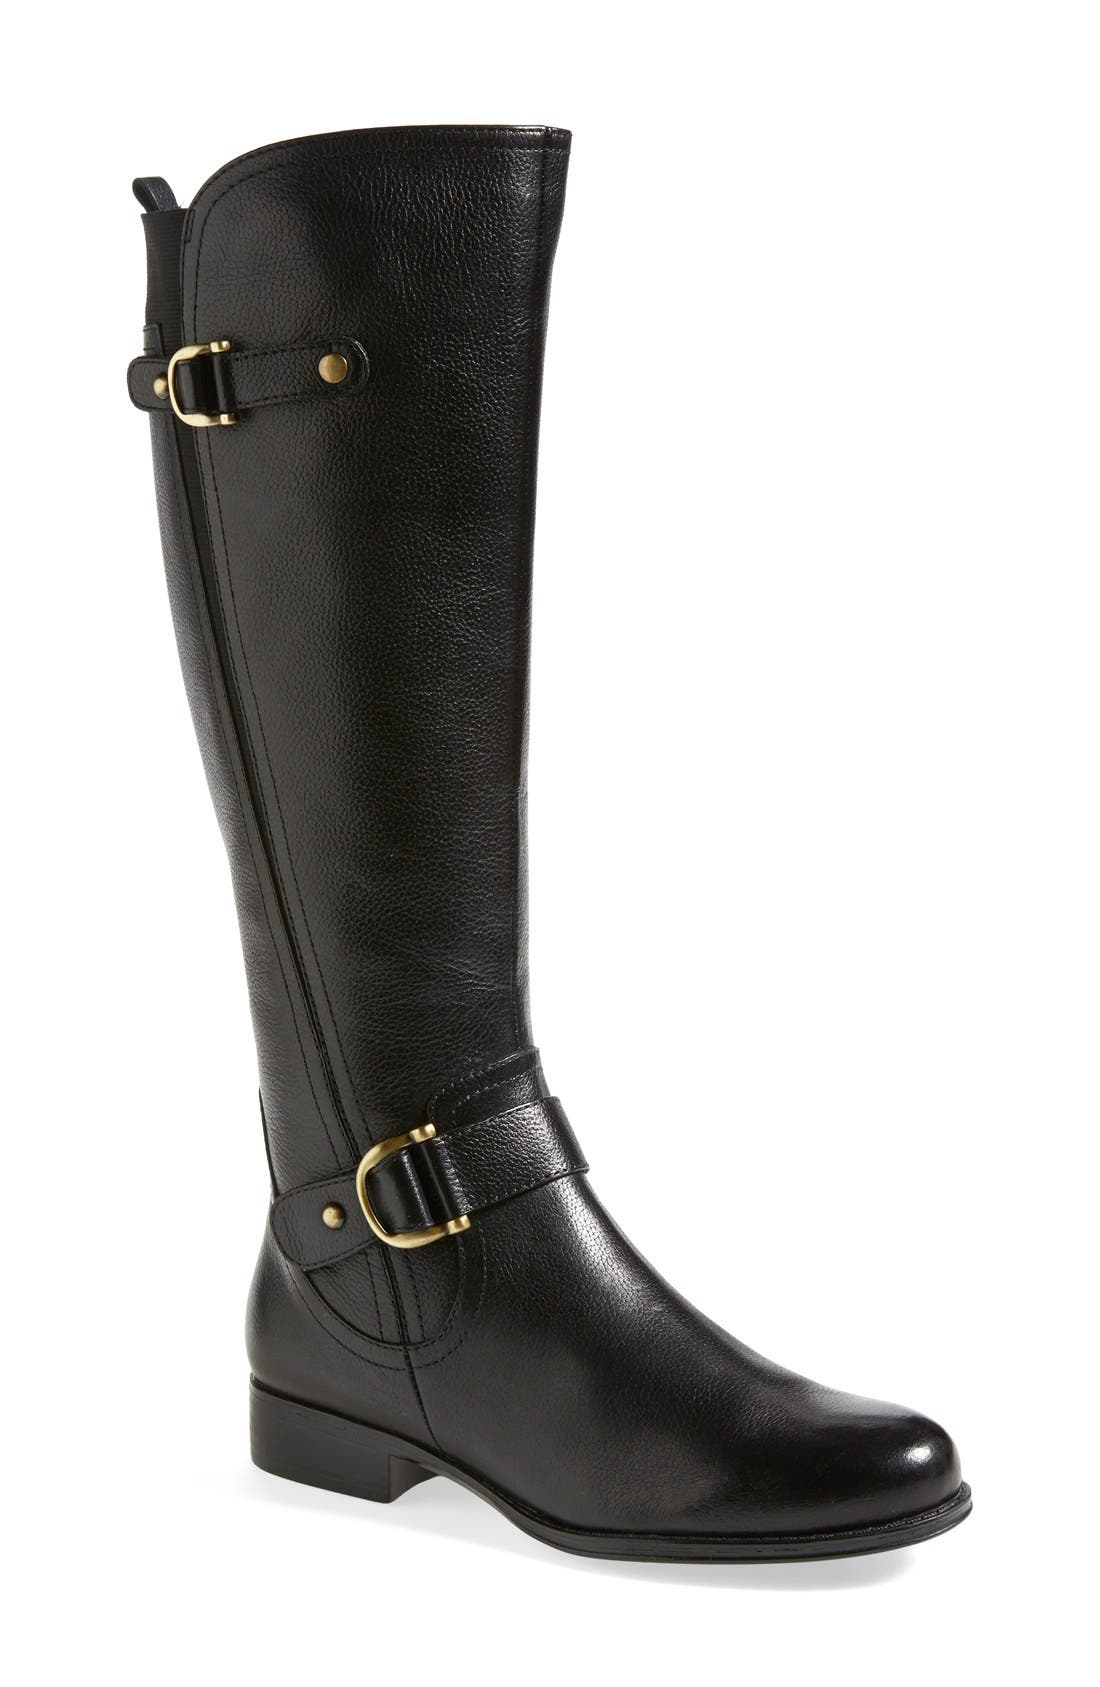 Main Image - Naturalizer 'Jersey' Leather Riding Boot (Women)